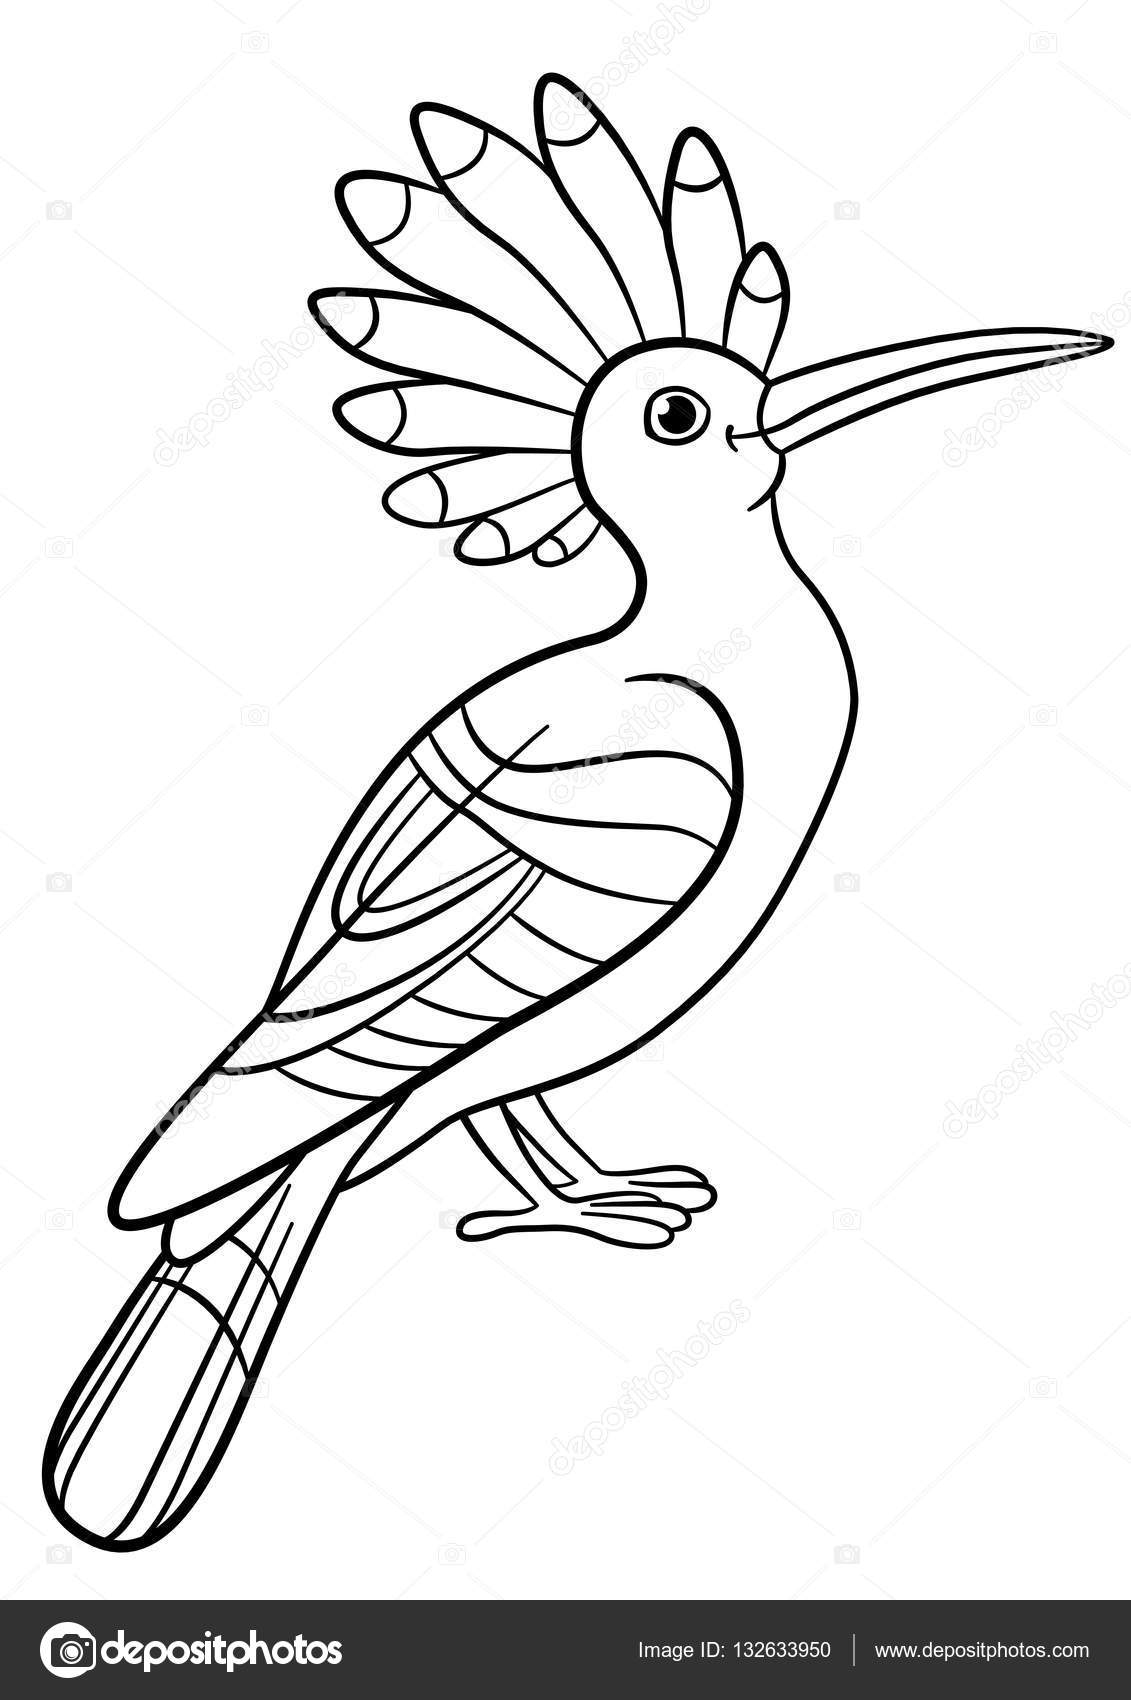 Coloring pages. Cute beautiful hoopoe sits. — Stock Vector © ya ...